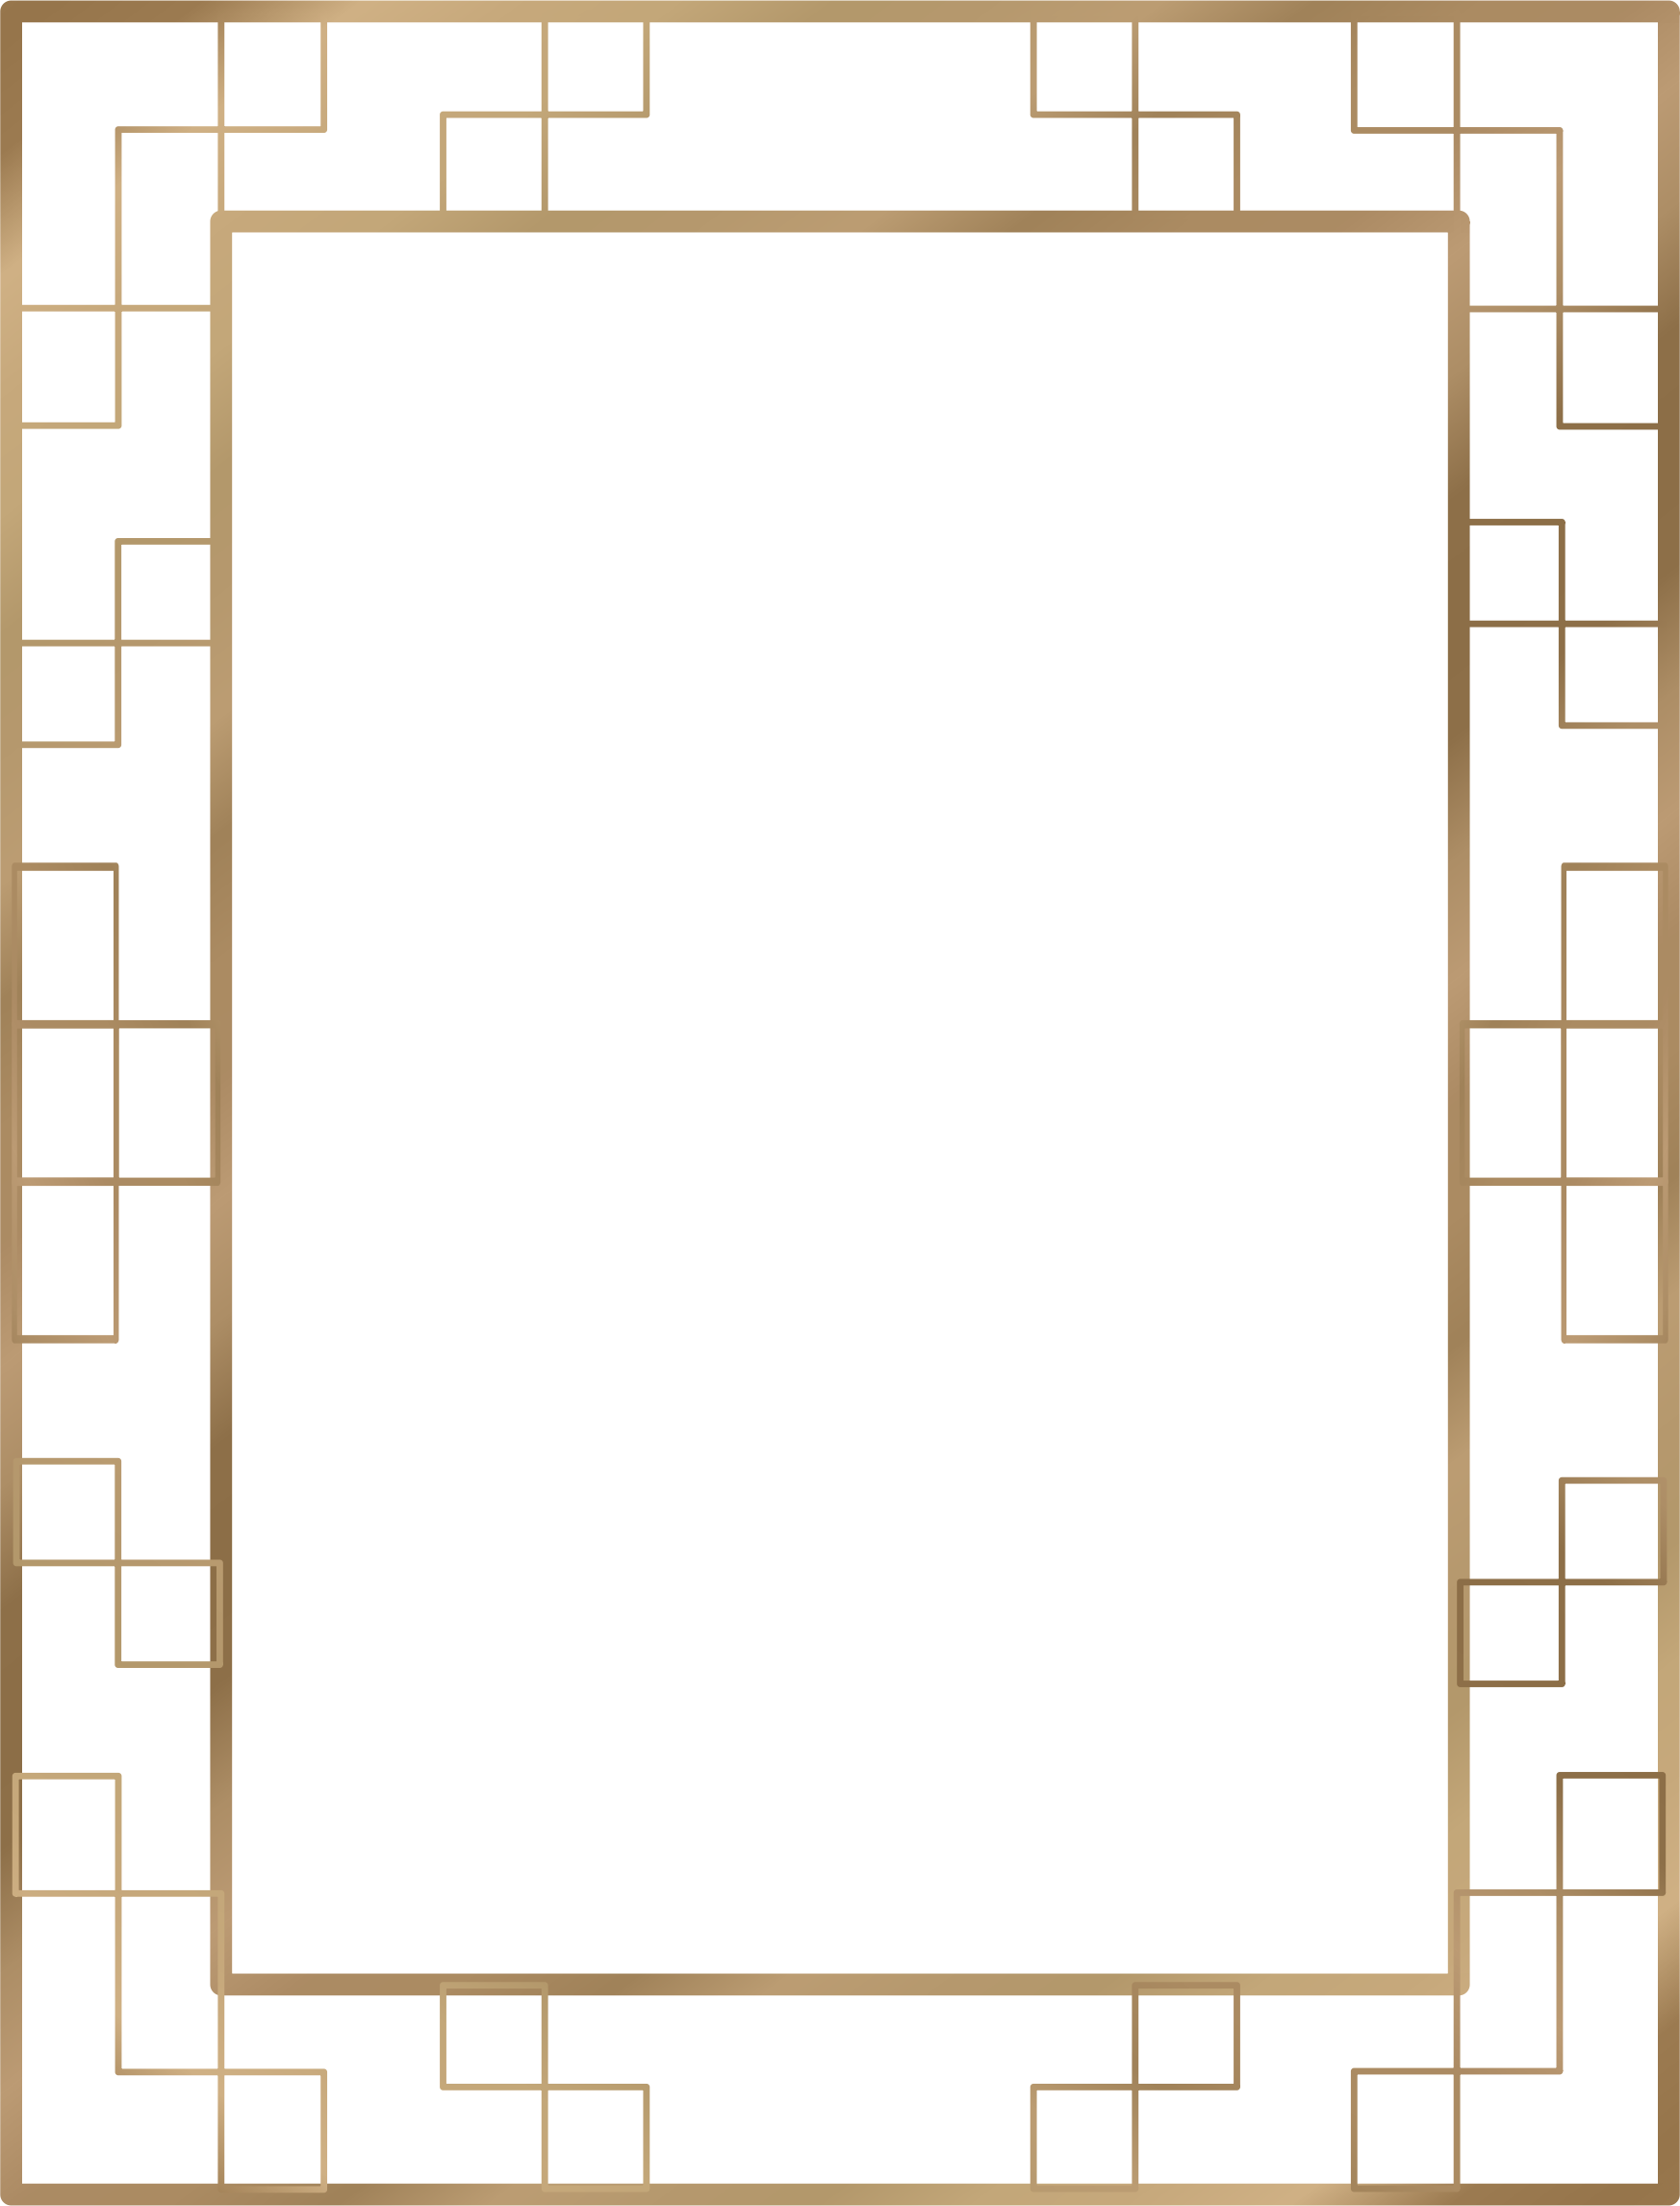 Art deco borders png. Border us size icons